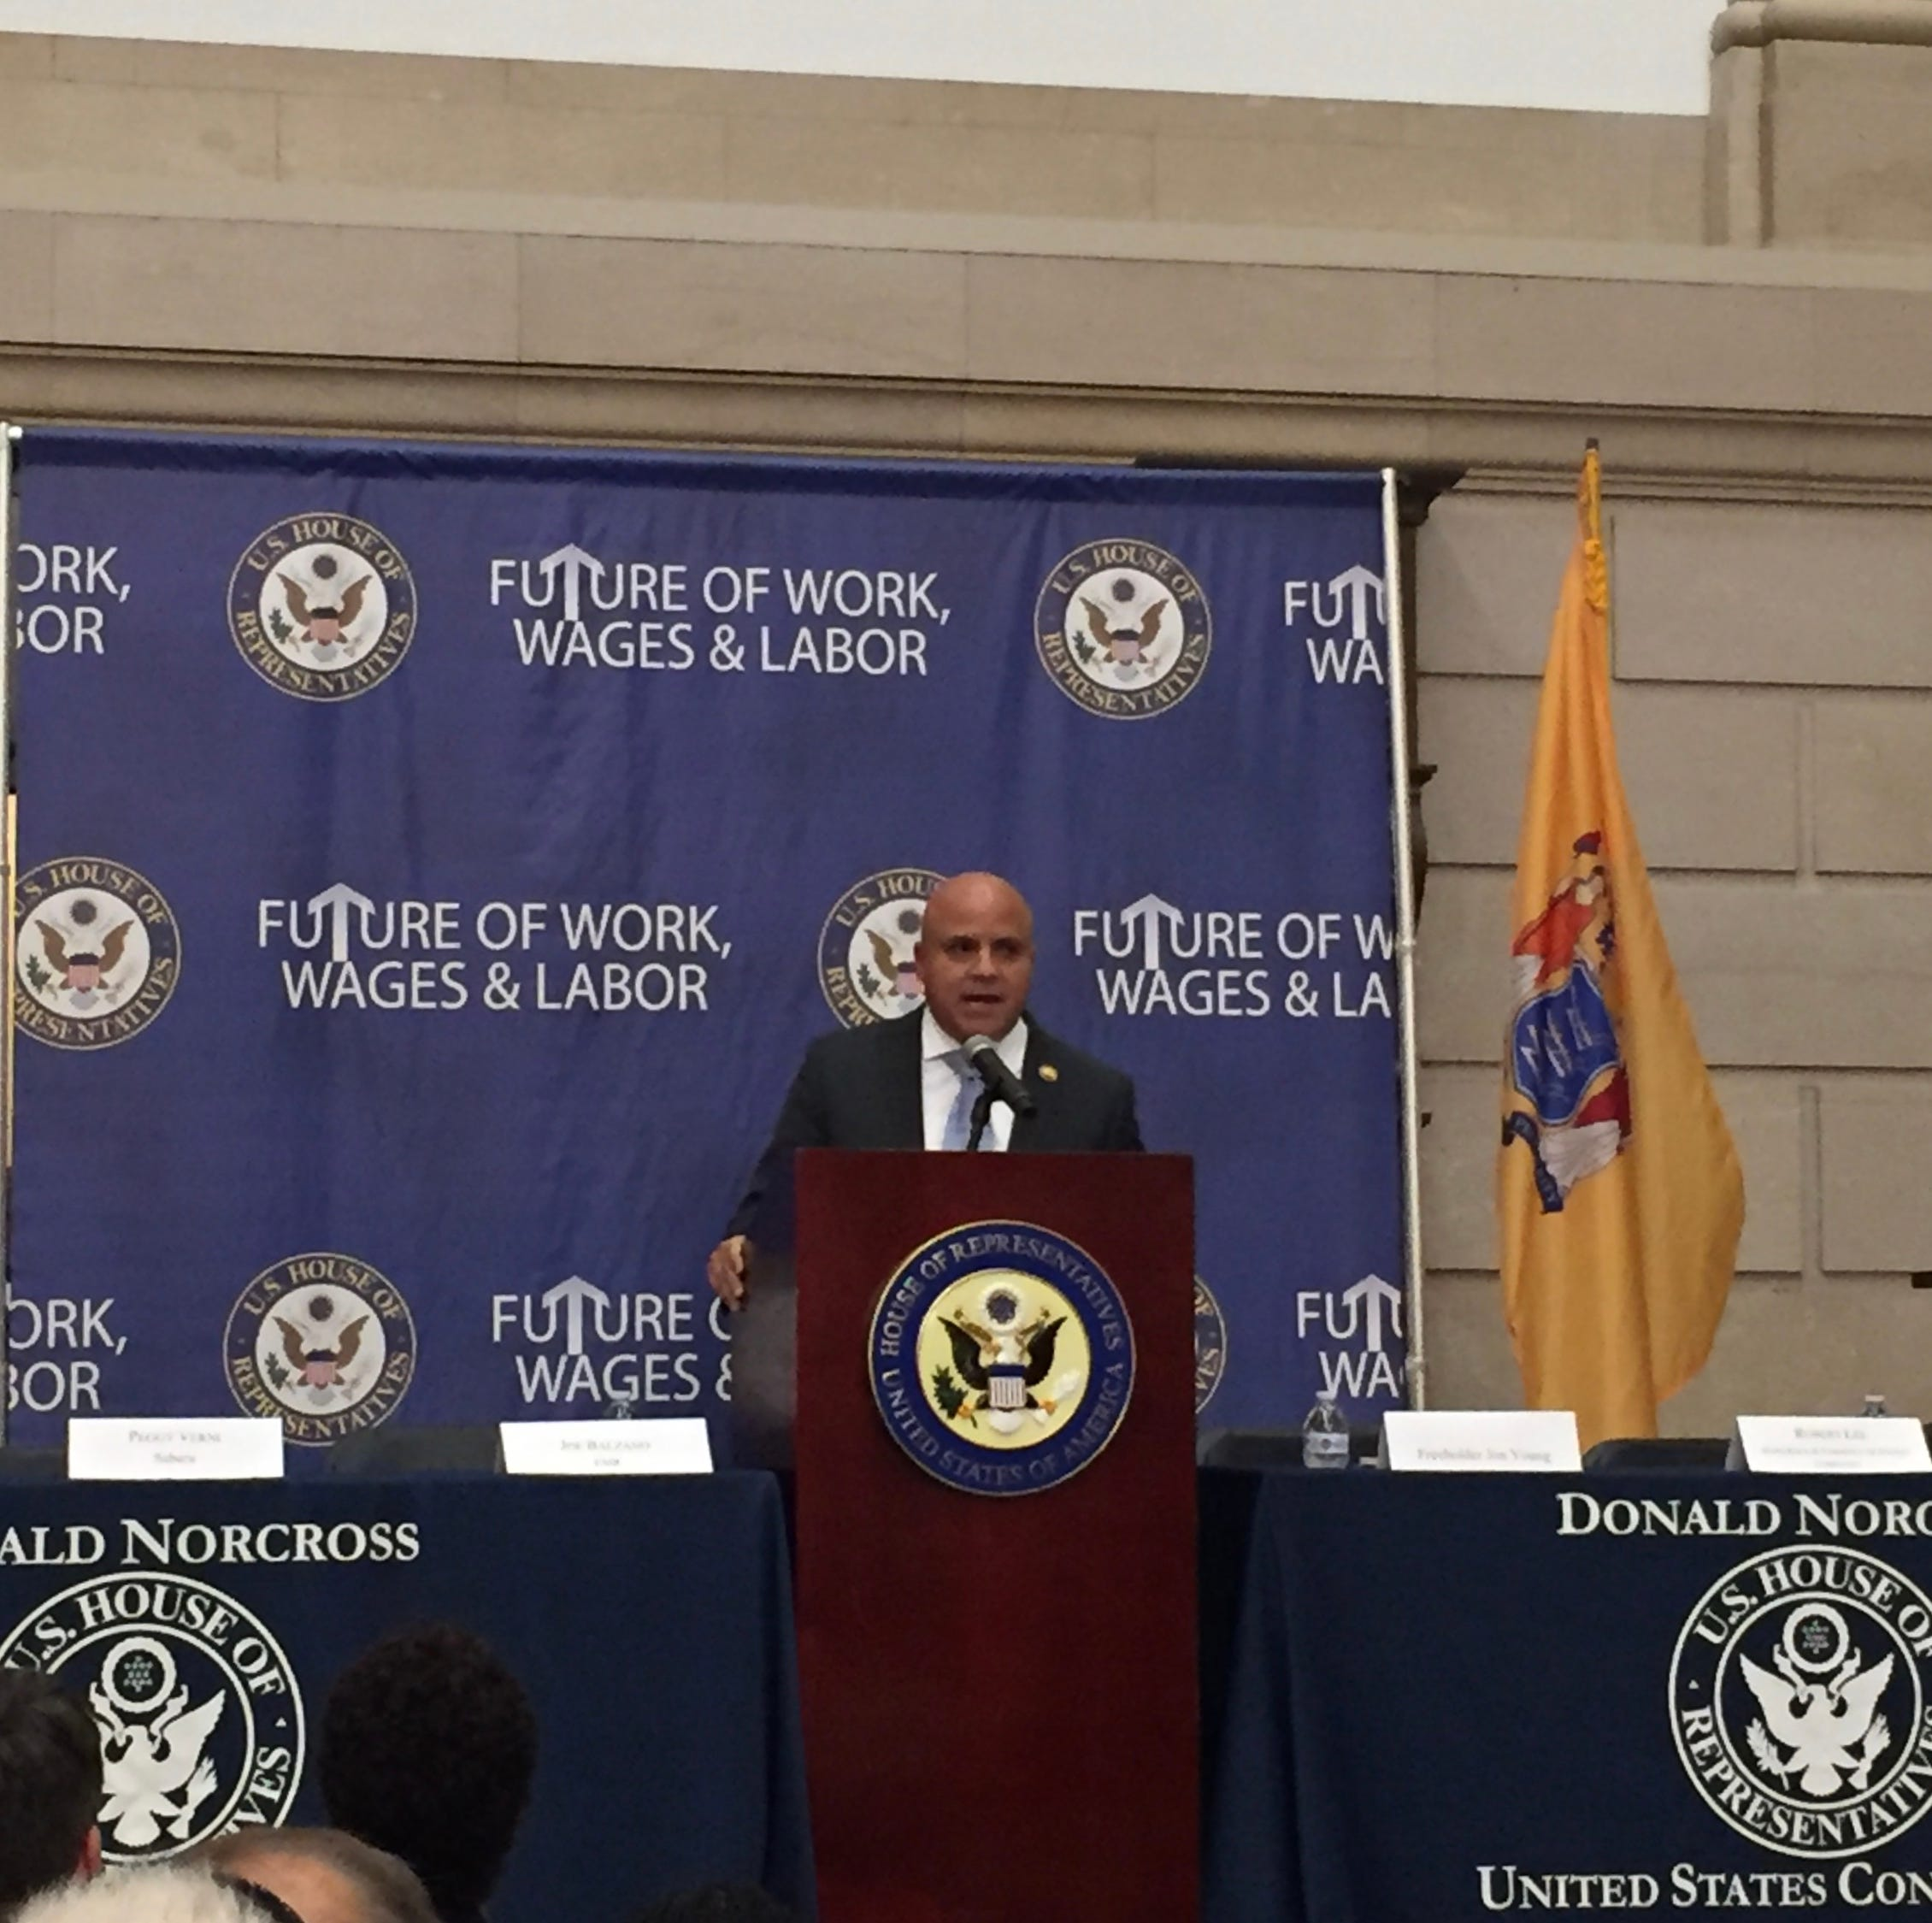 Camden mayor announces new jobs initiative for city residents at forum